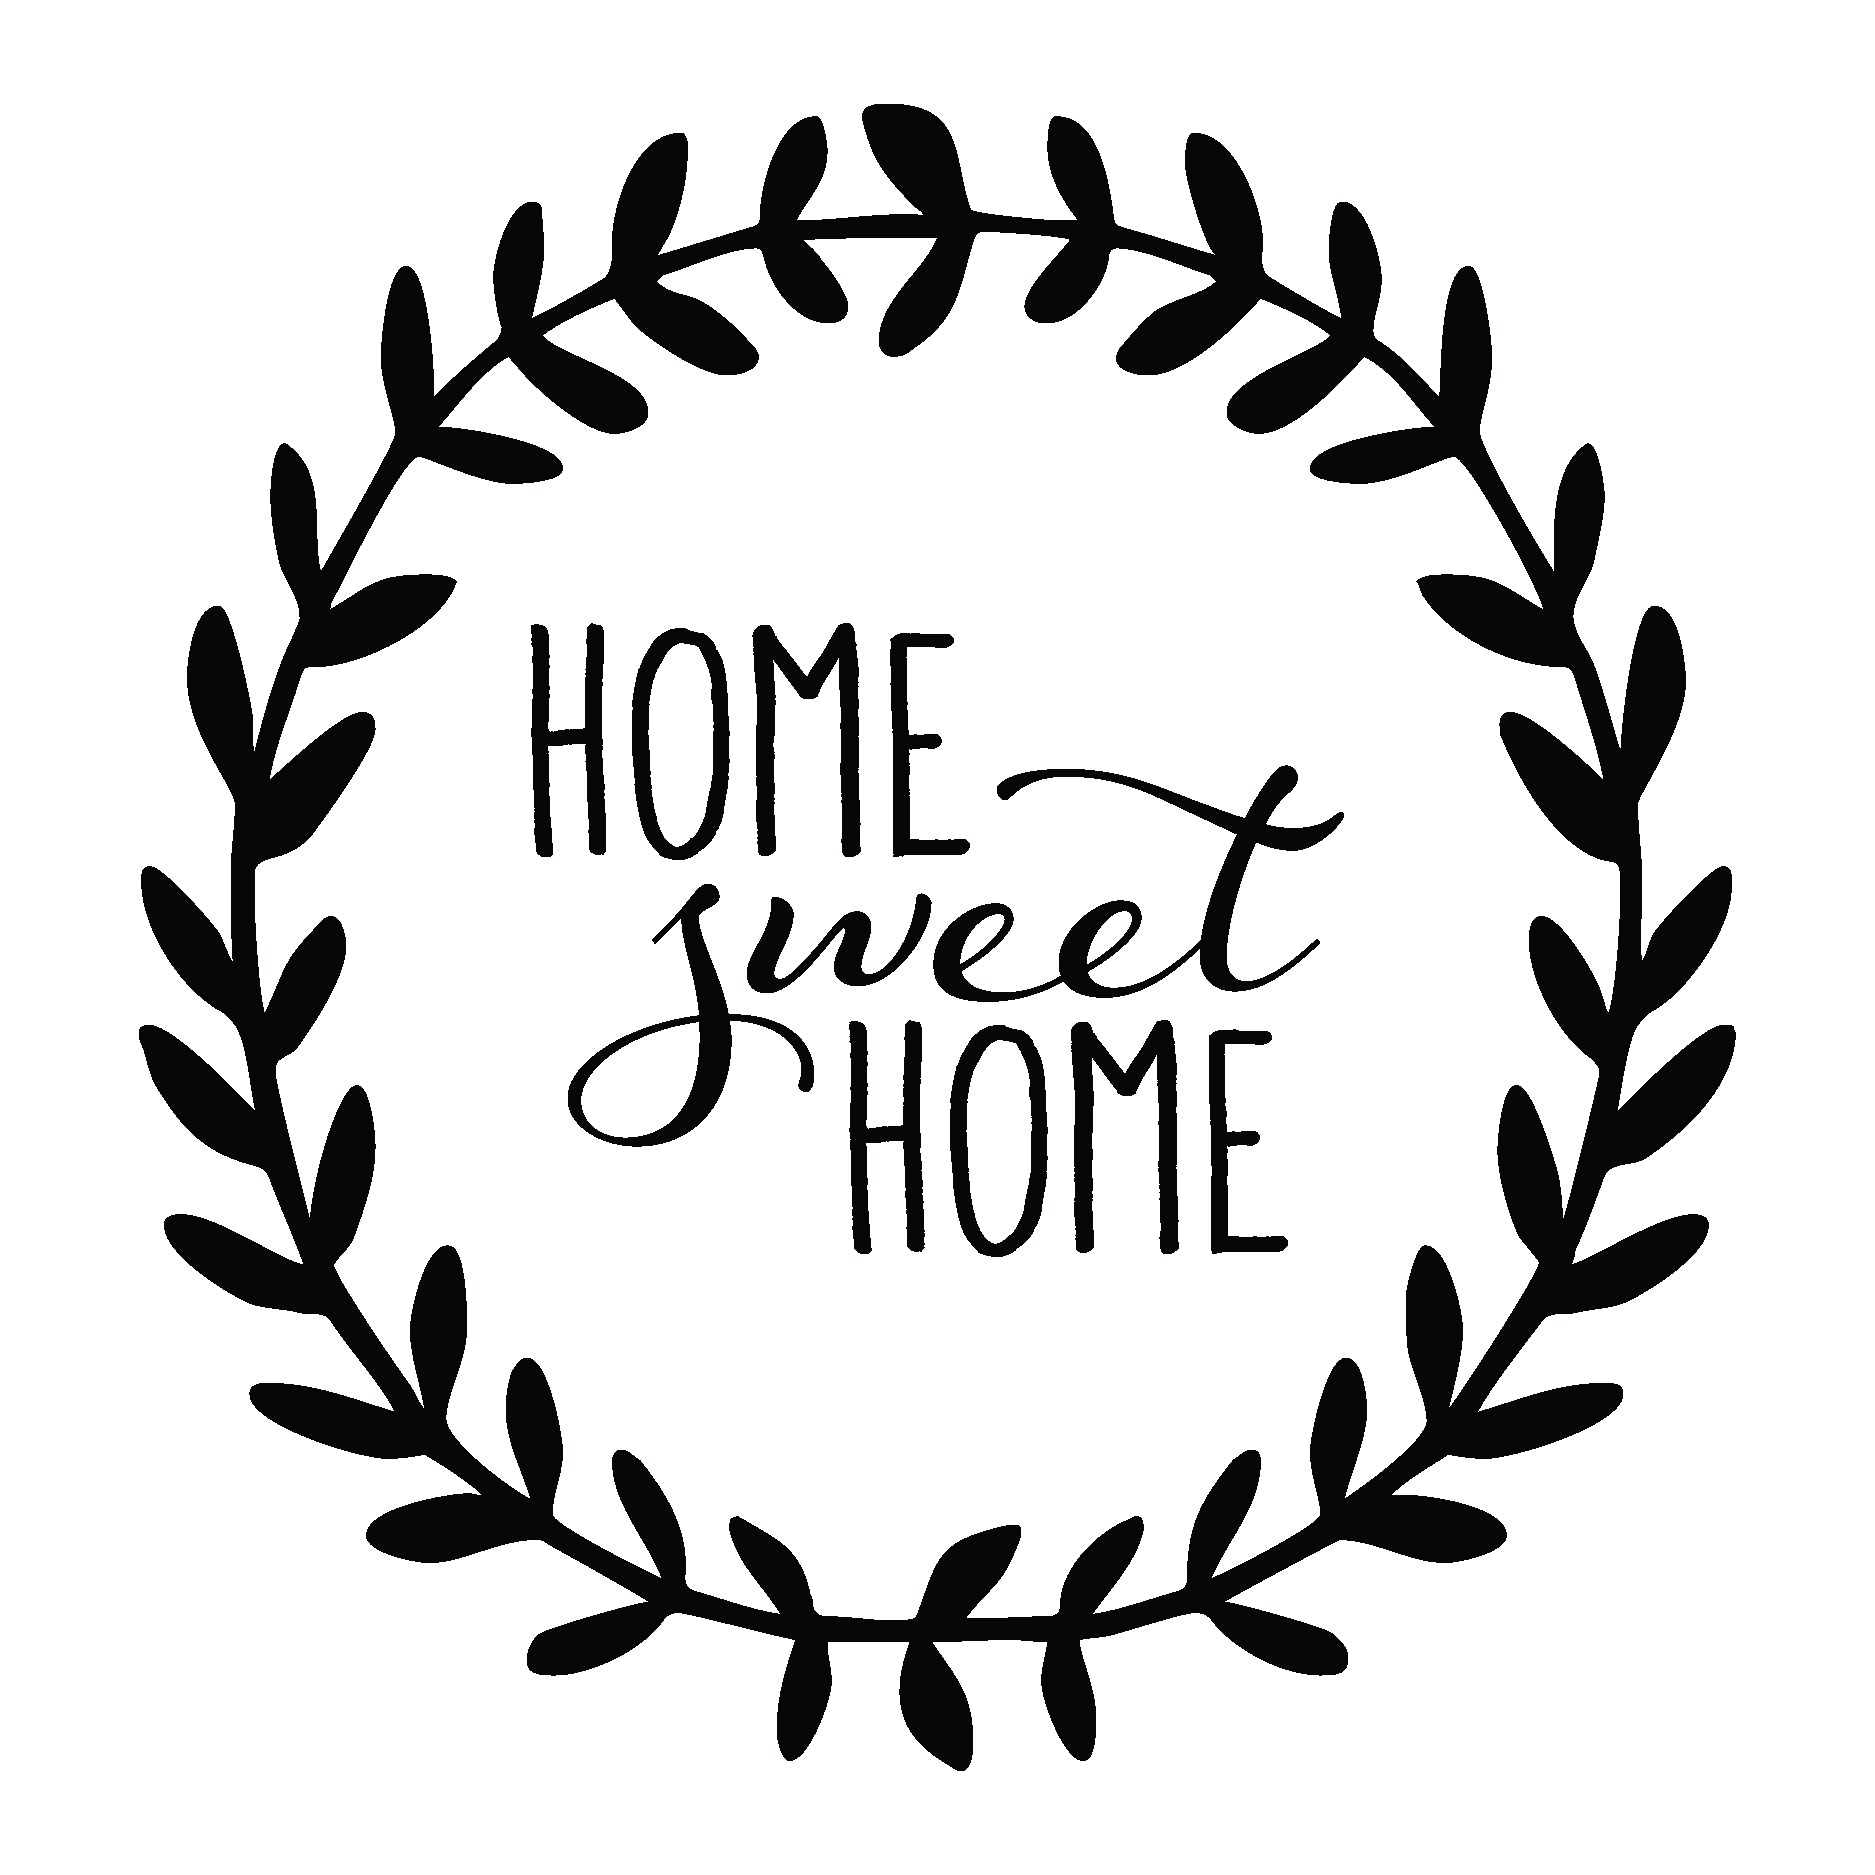 HQ Home Sweet Home Wallpapers | File 46.17Kb